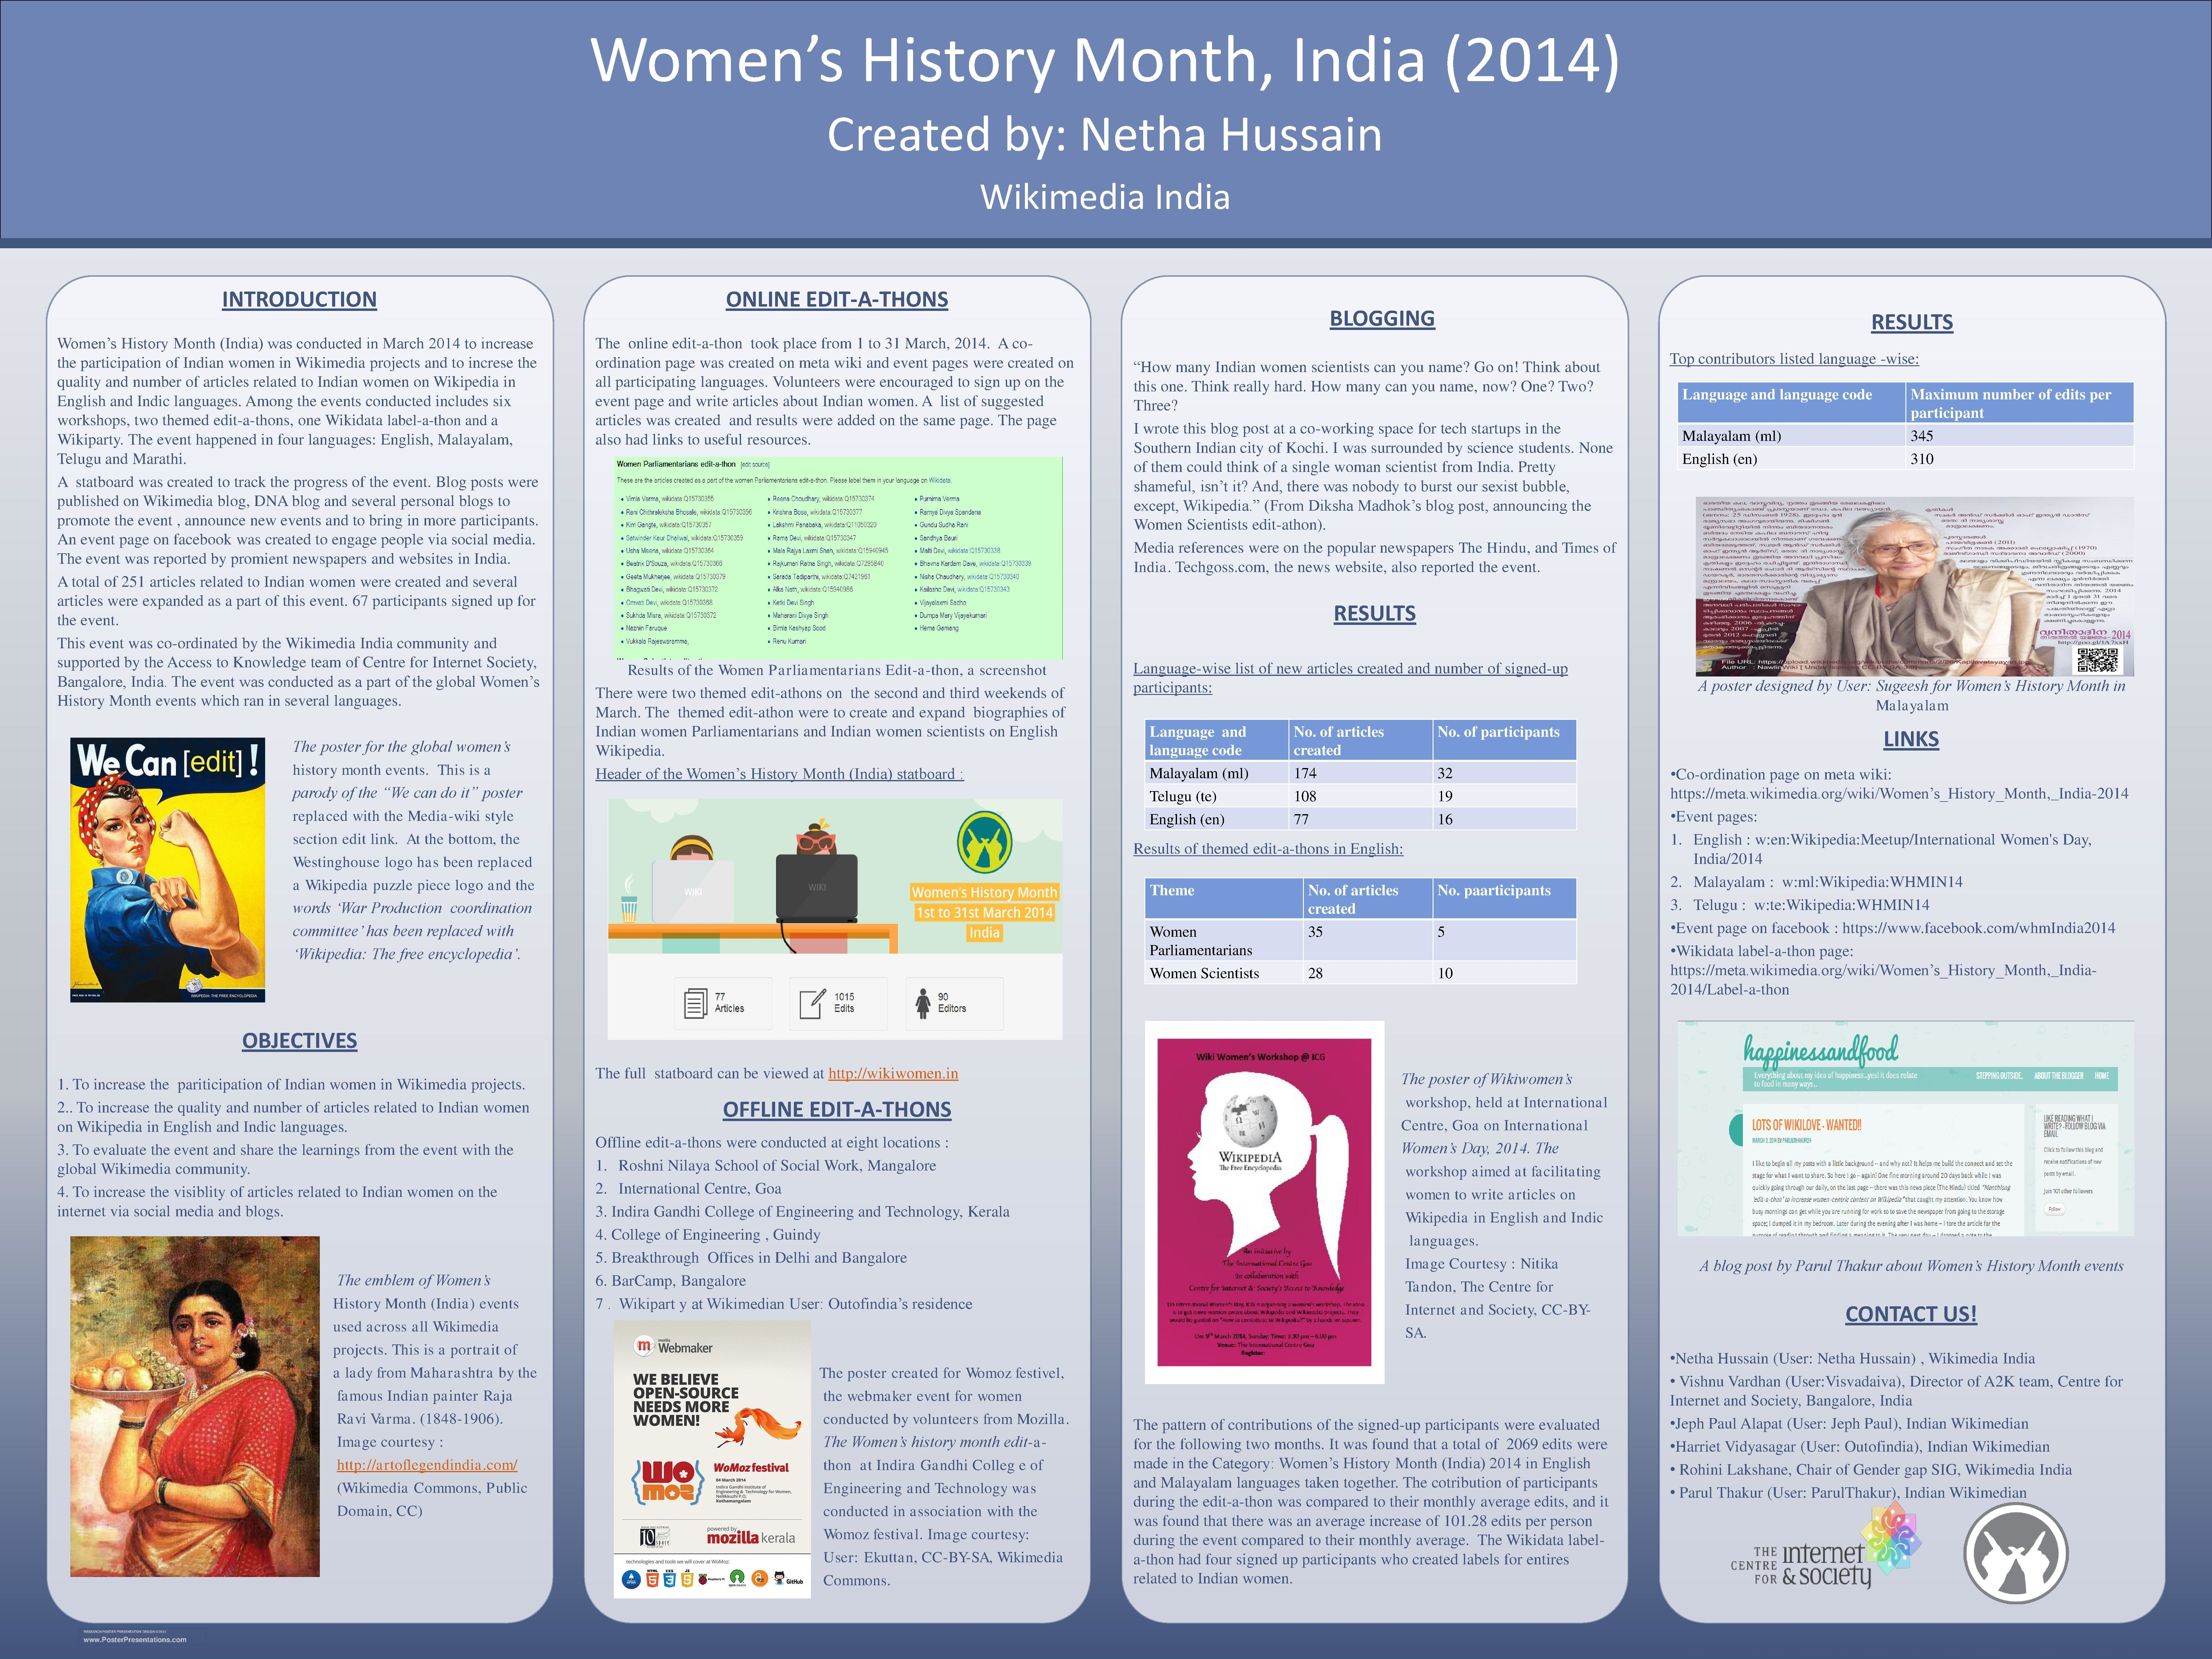 the event of womens history month